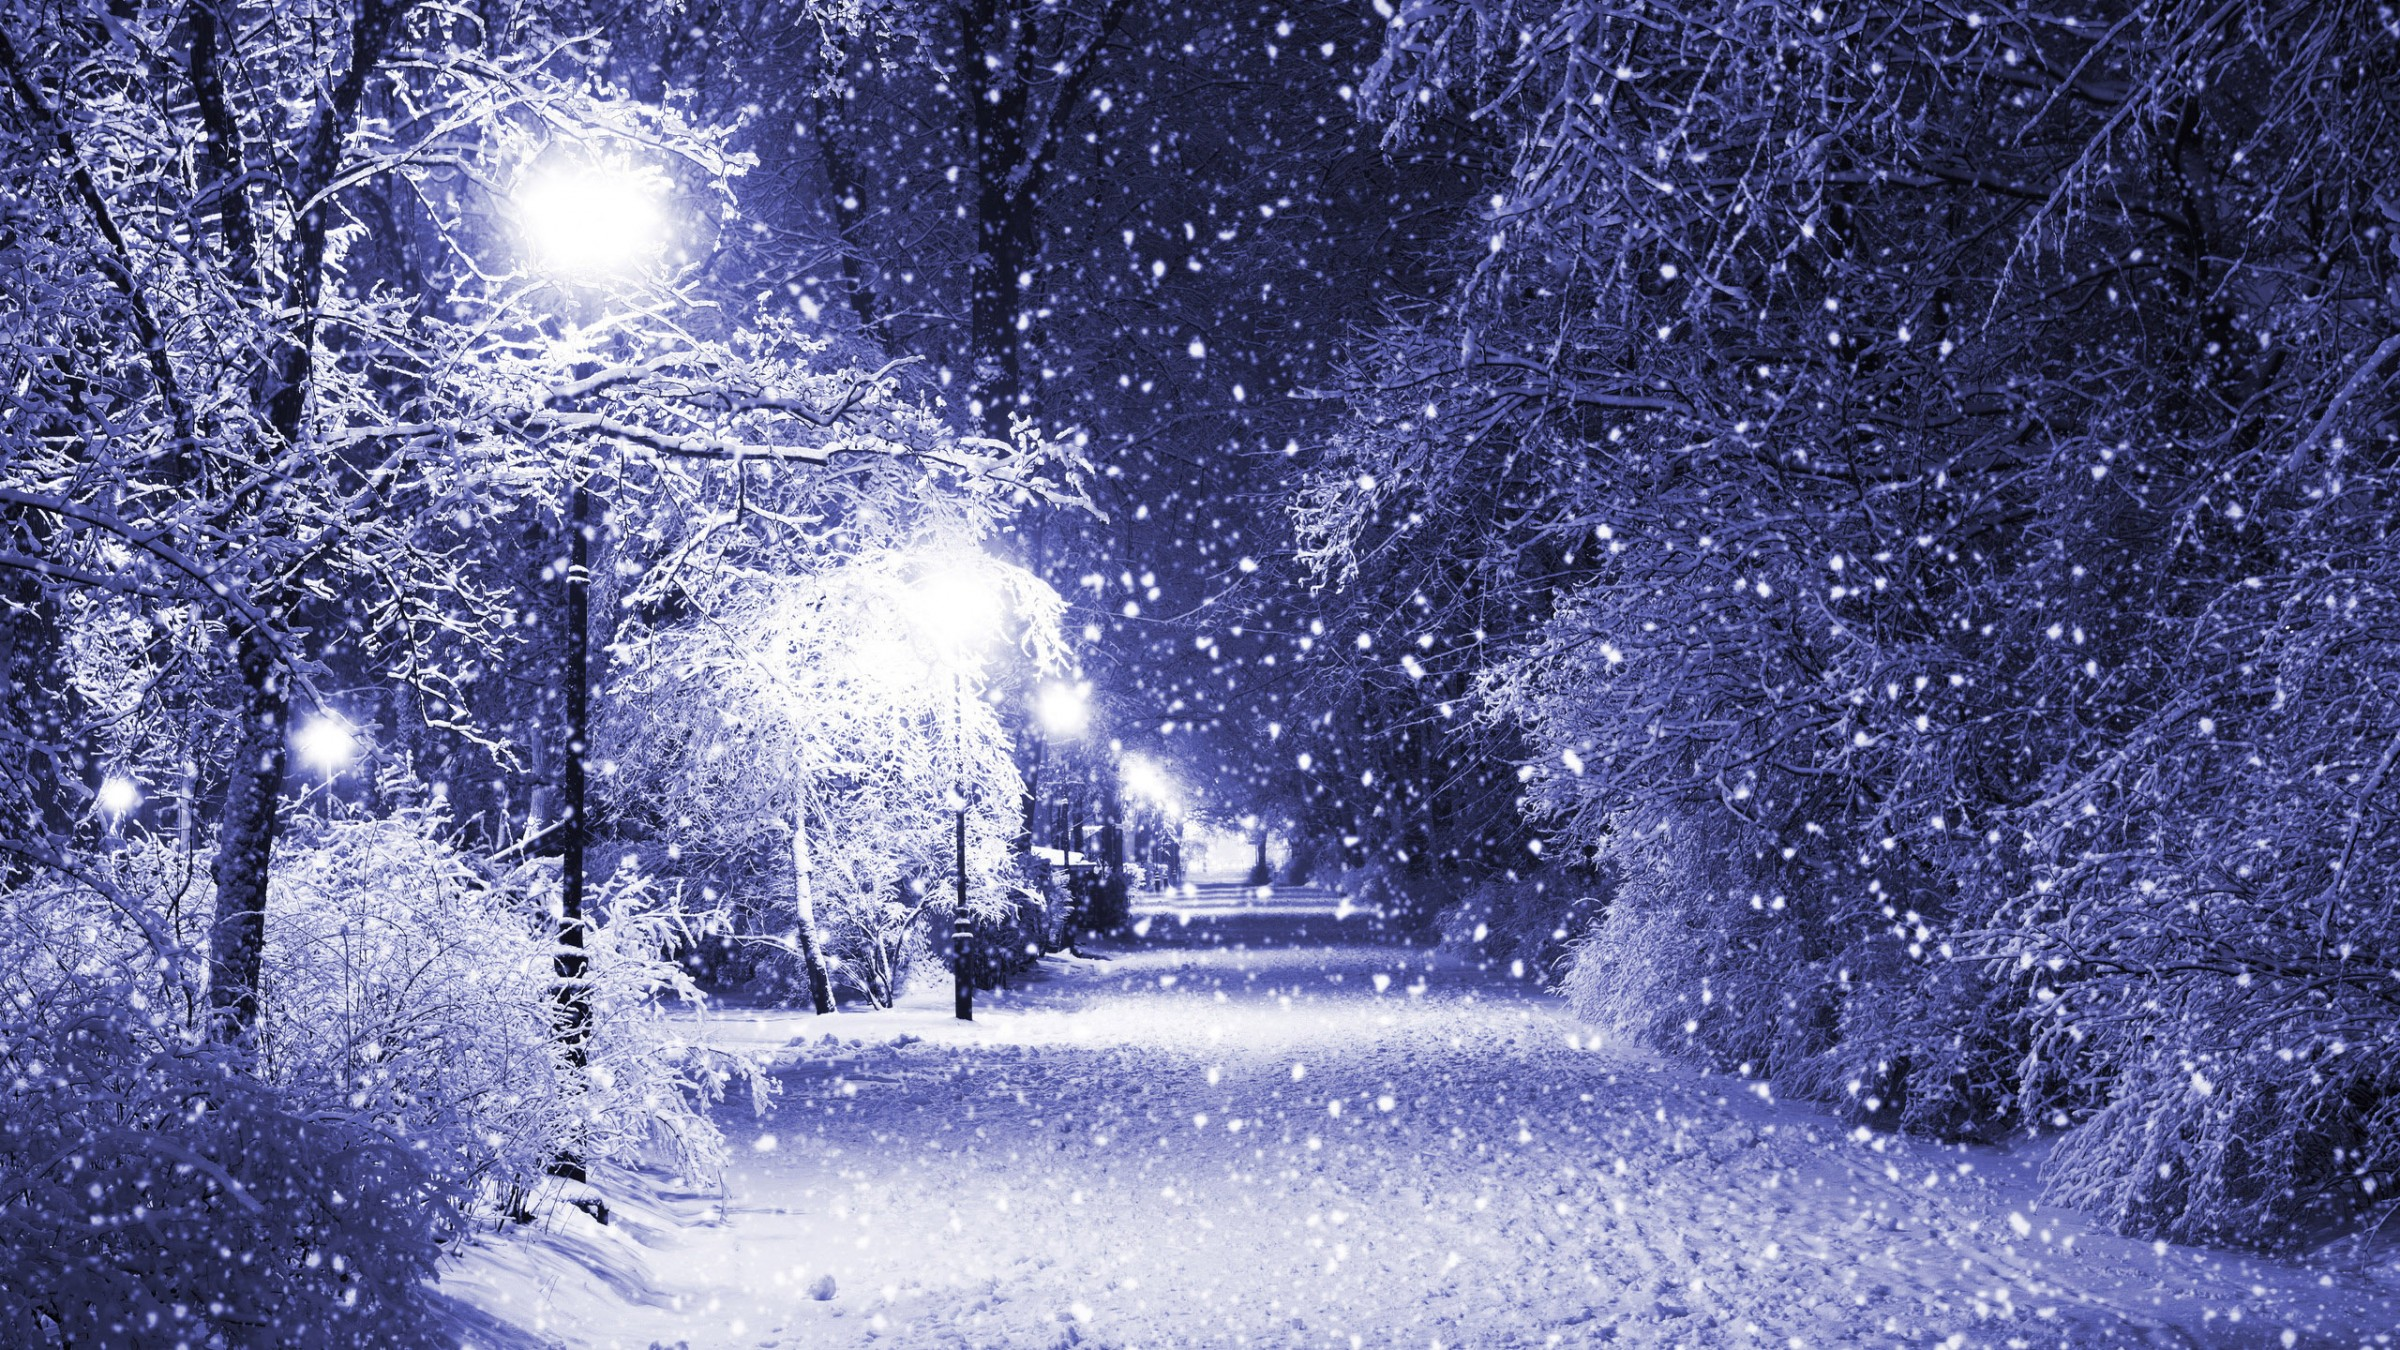 snow-winter-street-lantern-night-tree-nature-1350x2400